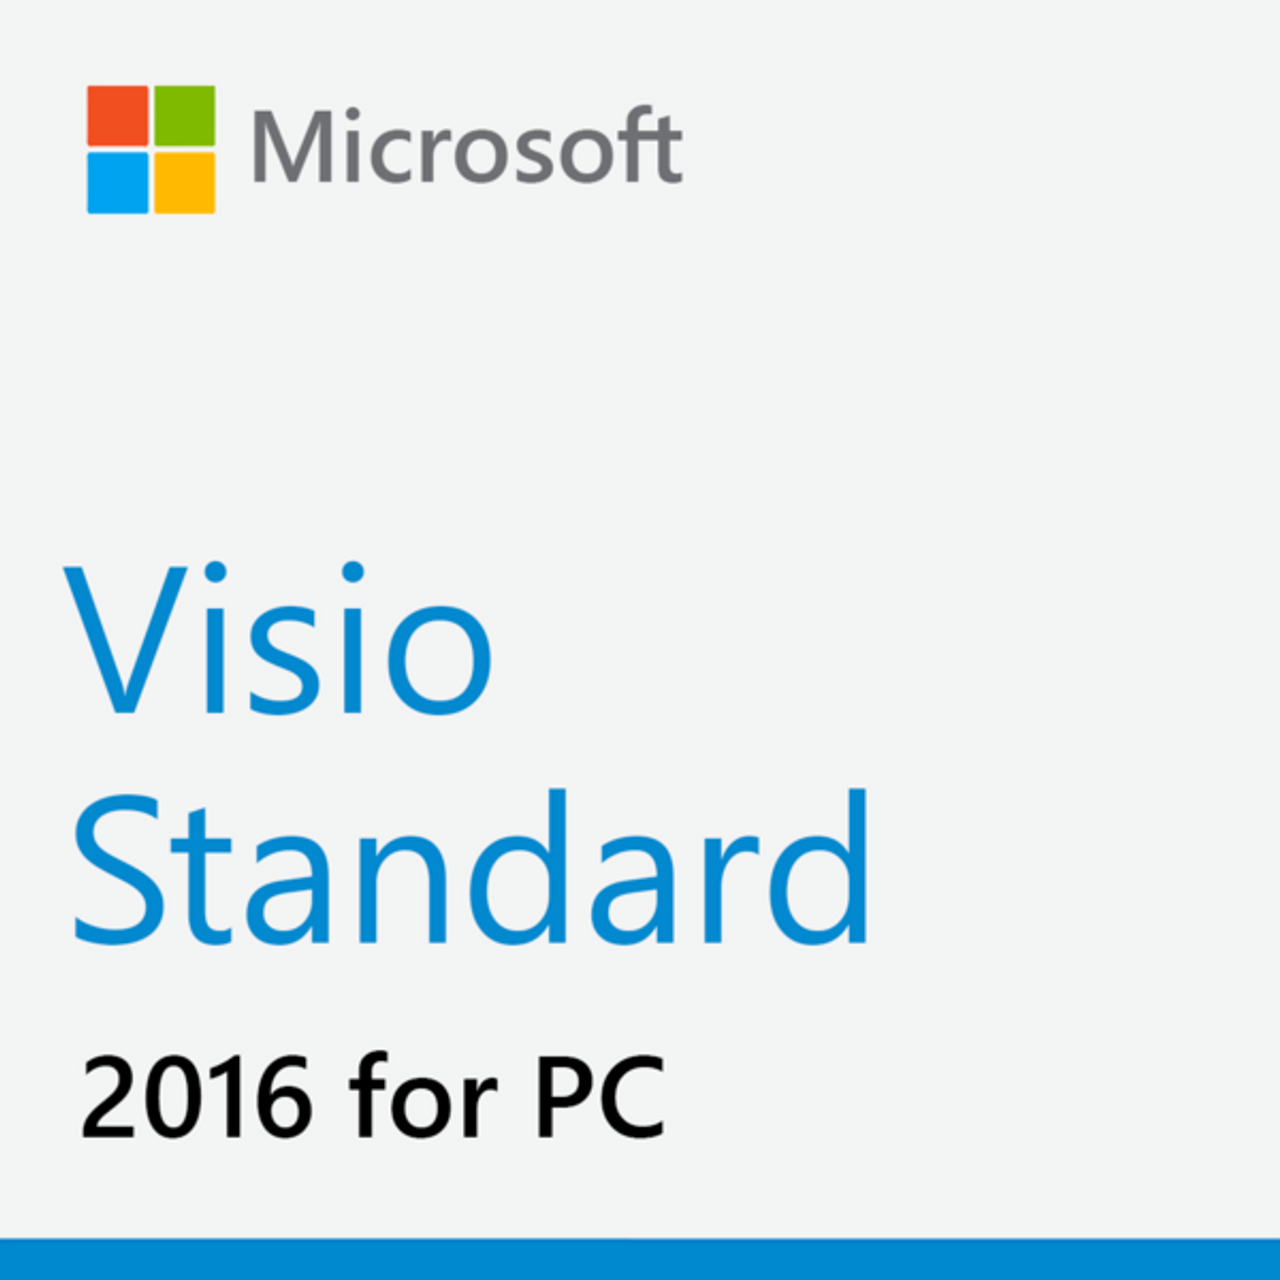 microsoft visio professional 2016 free download 64-bit